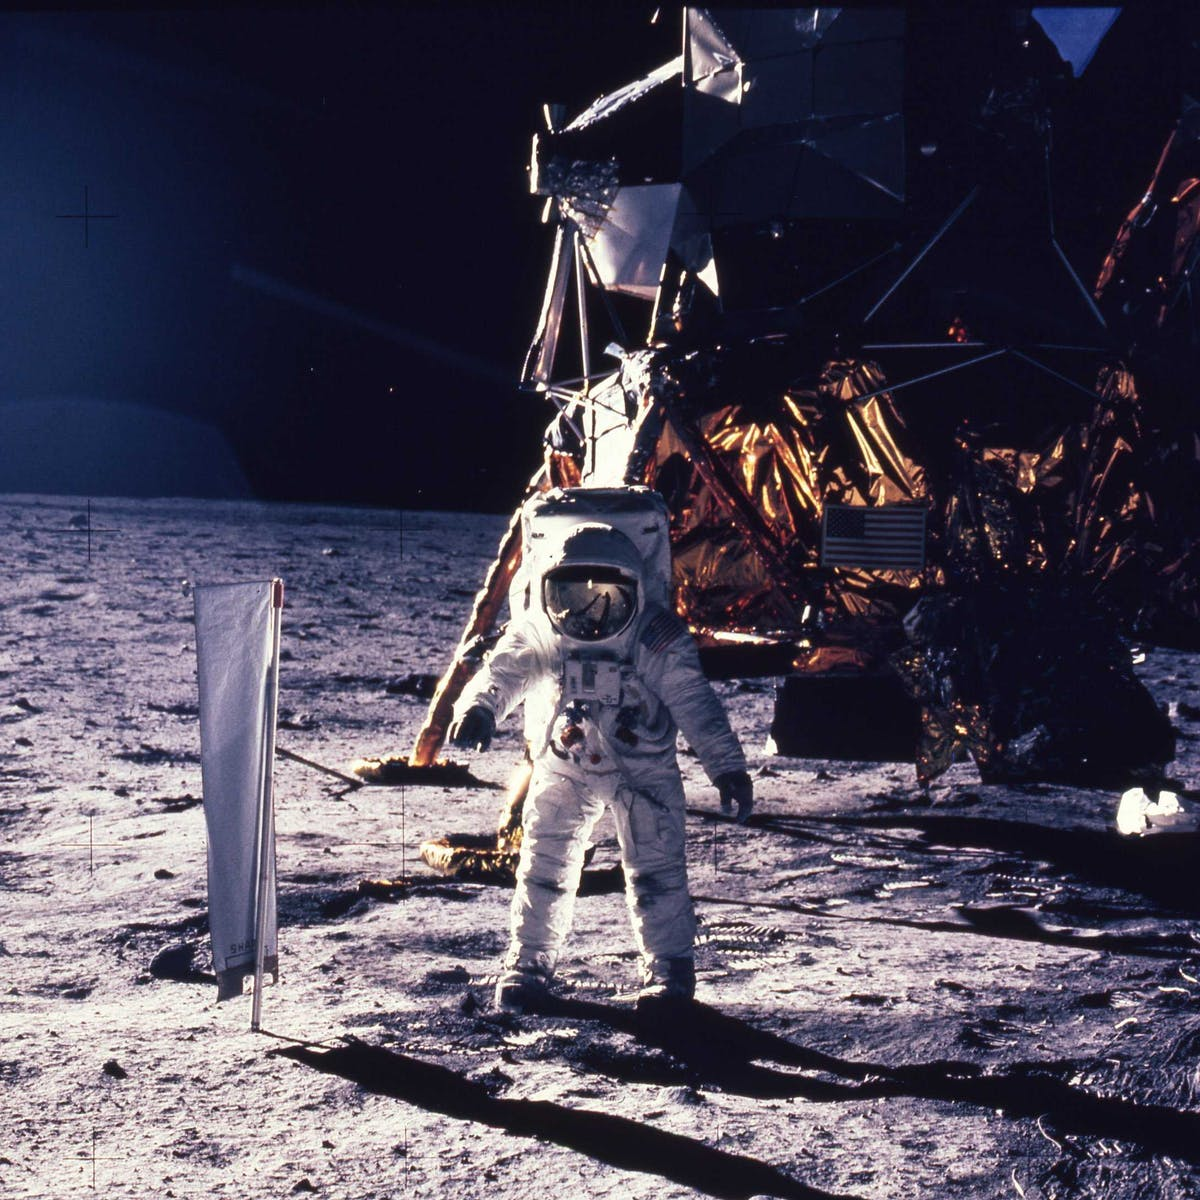 Space-wrecked: How we've turned the Moon into a junk yard